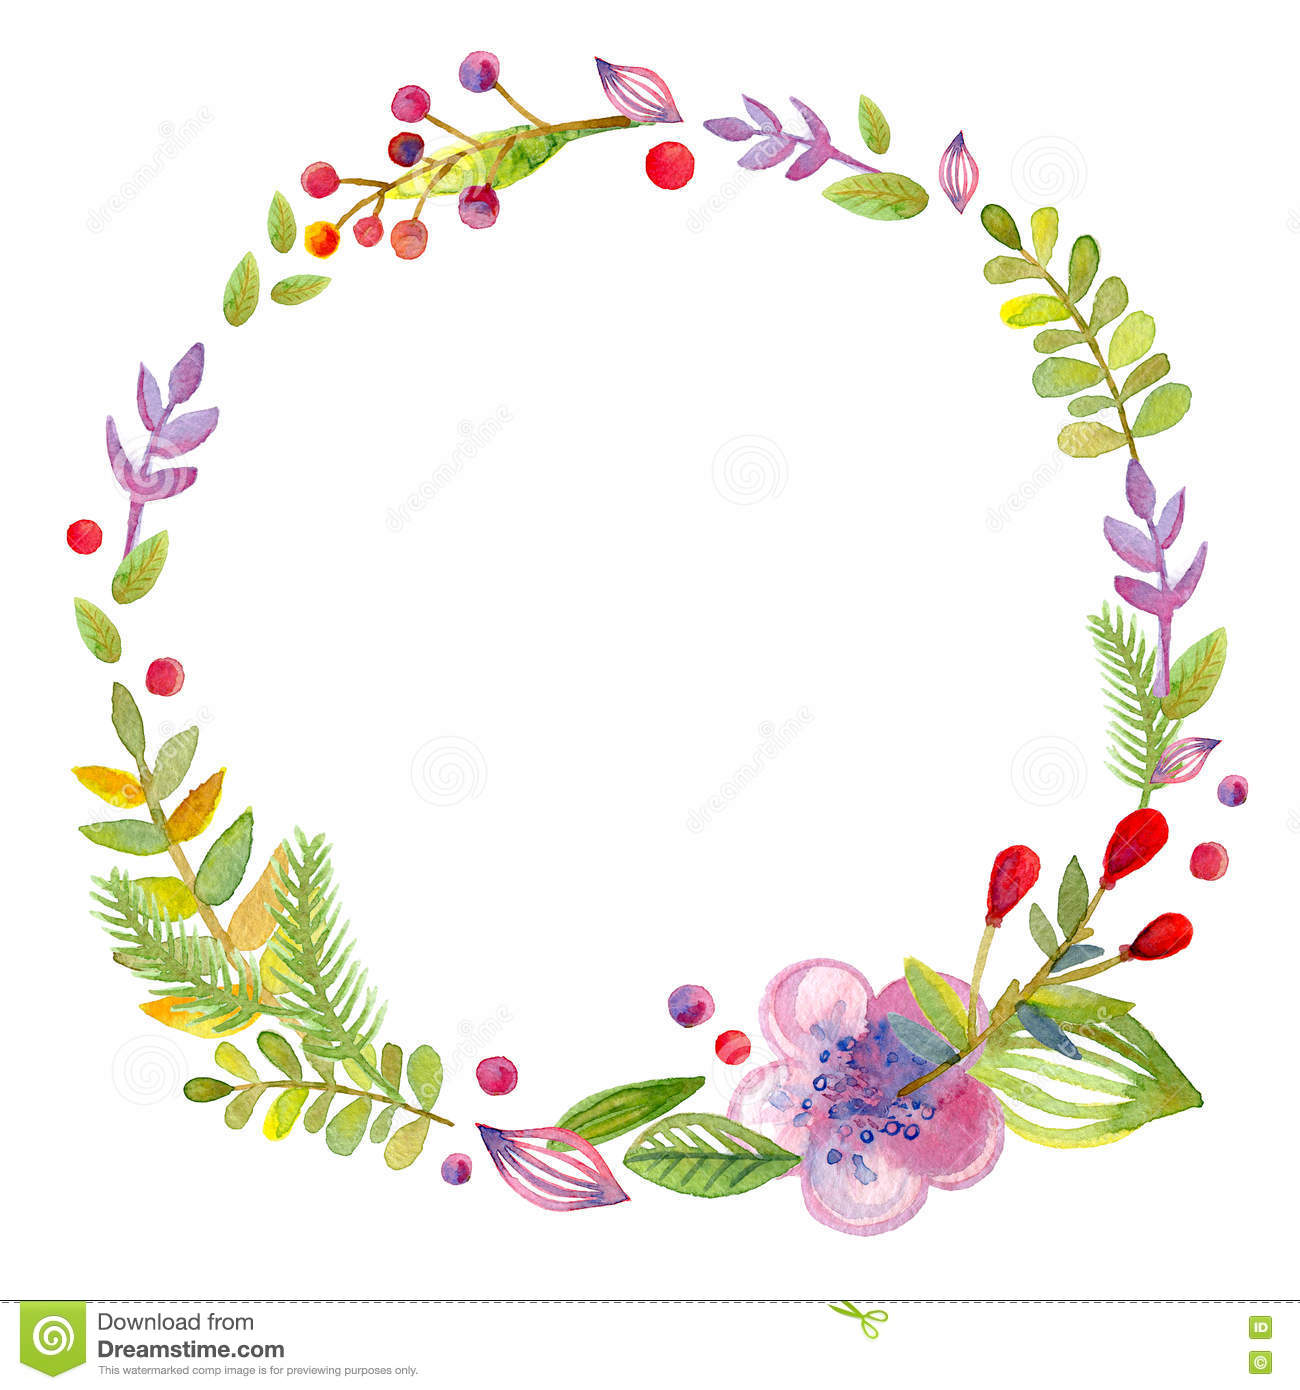 Hand Drawn Illustration - Watercolor Wreath. Christmas Wreath With ...